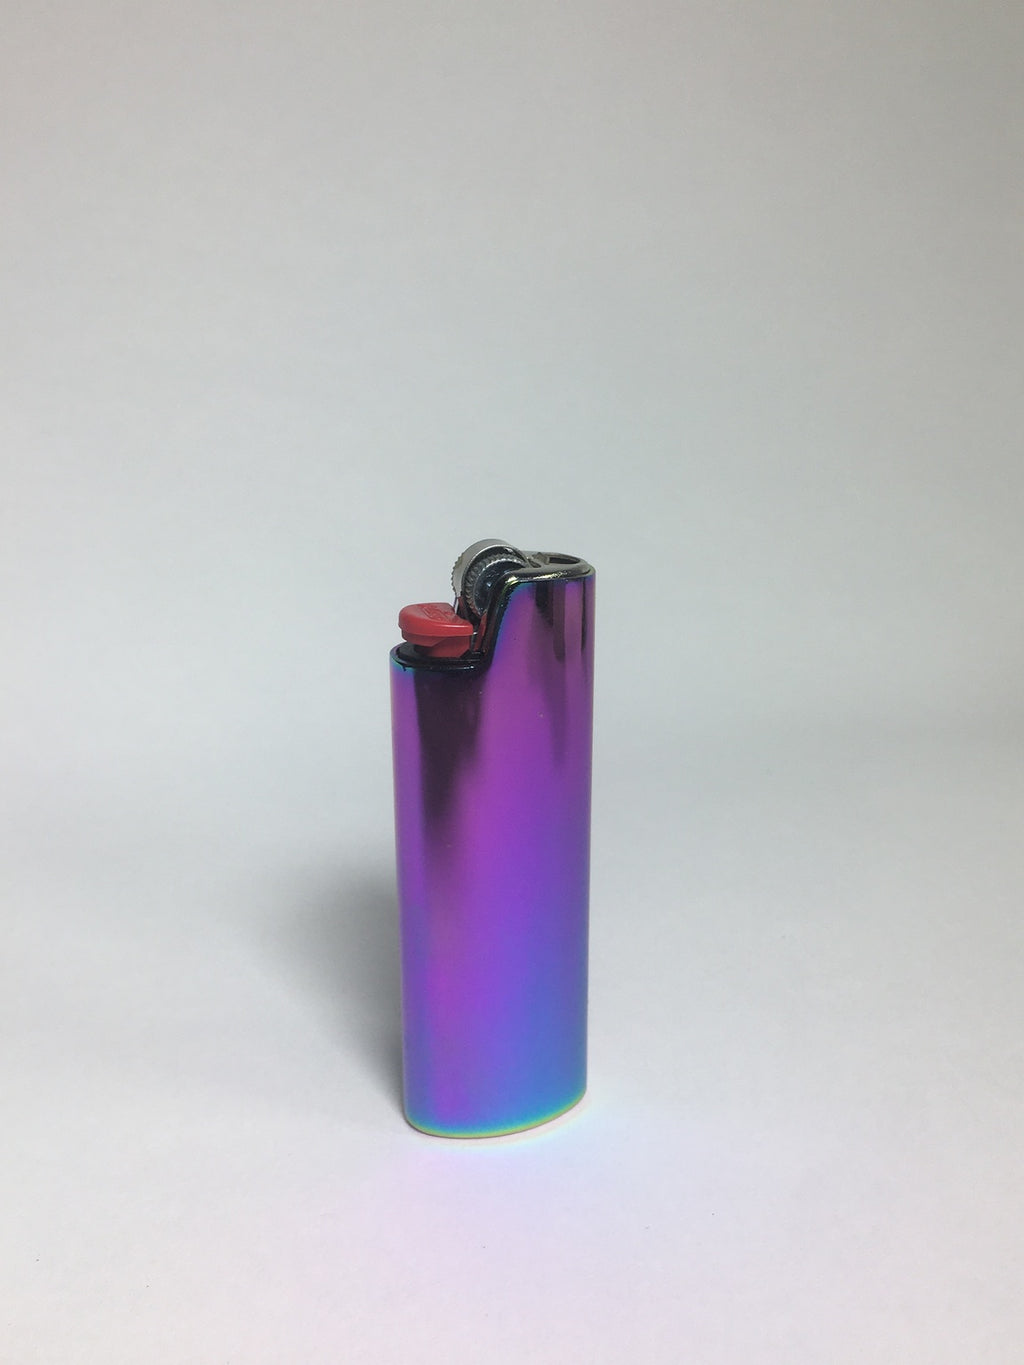 HOLOGRAPHIC Lighter Case